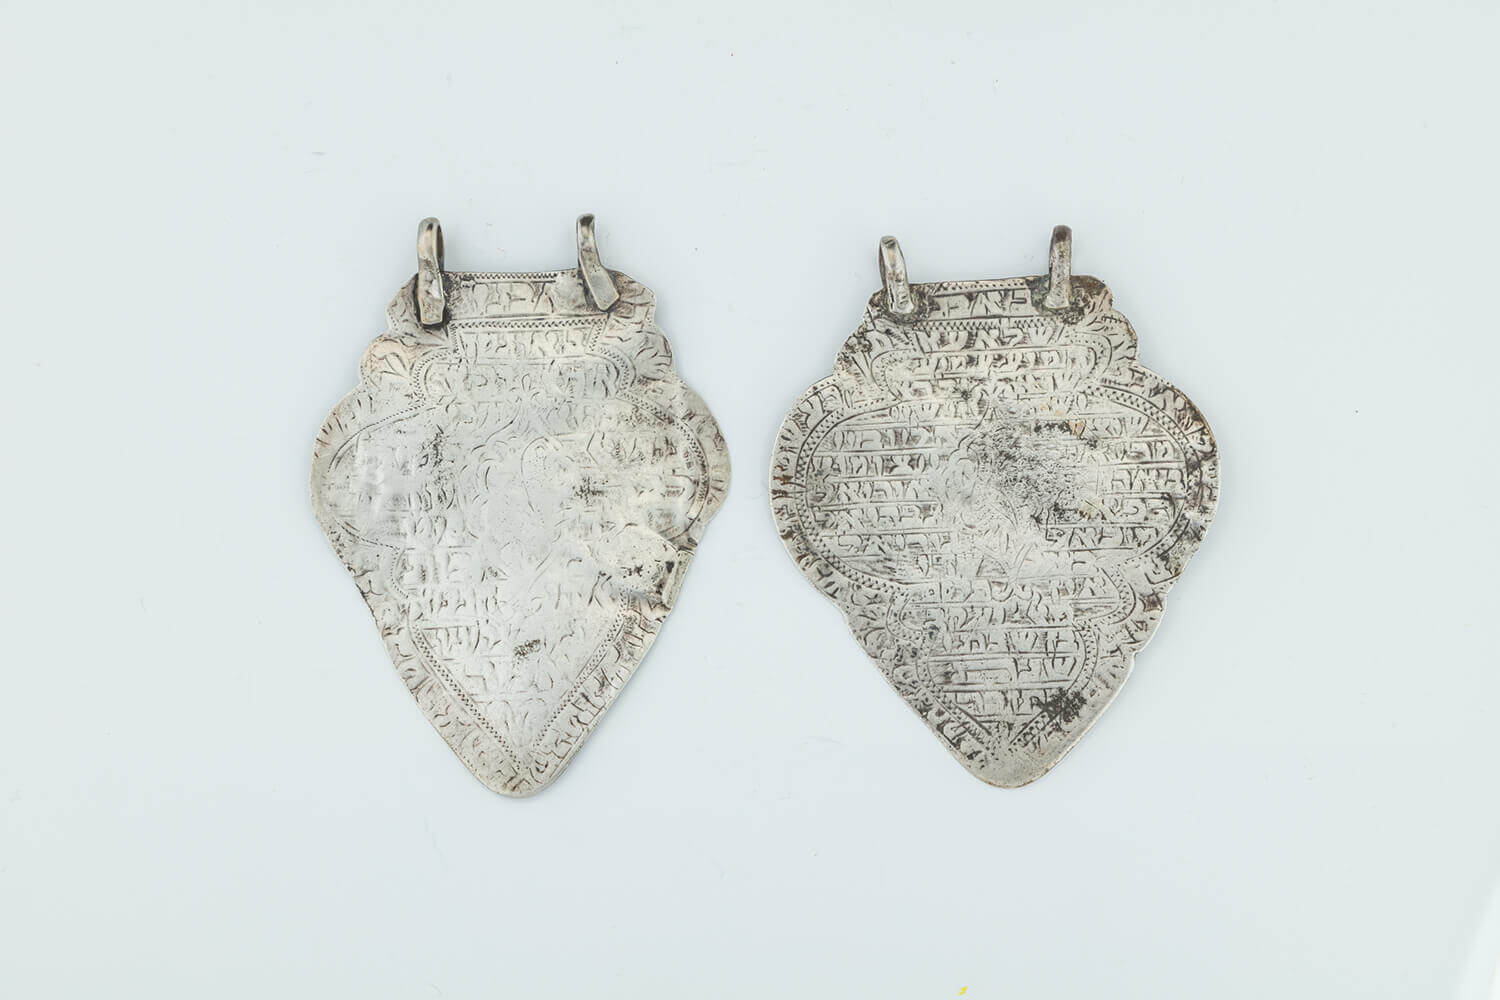 008. TWO EARLY SILVER AMULETS